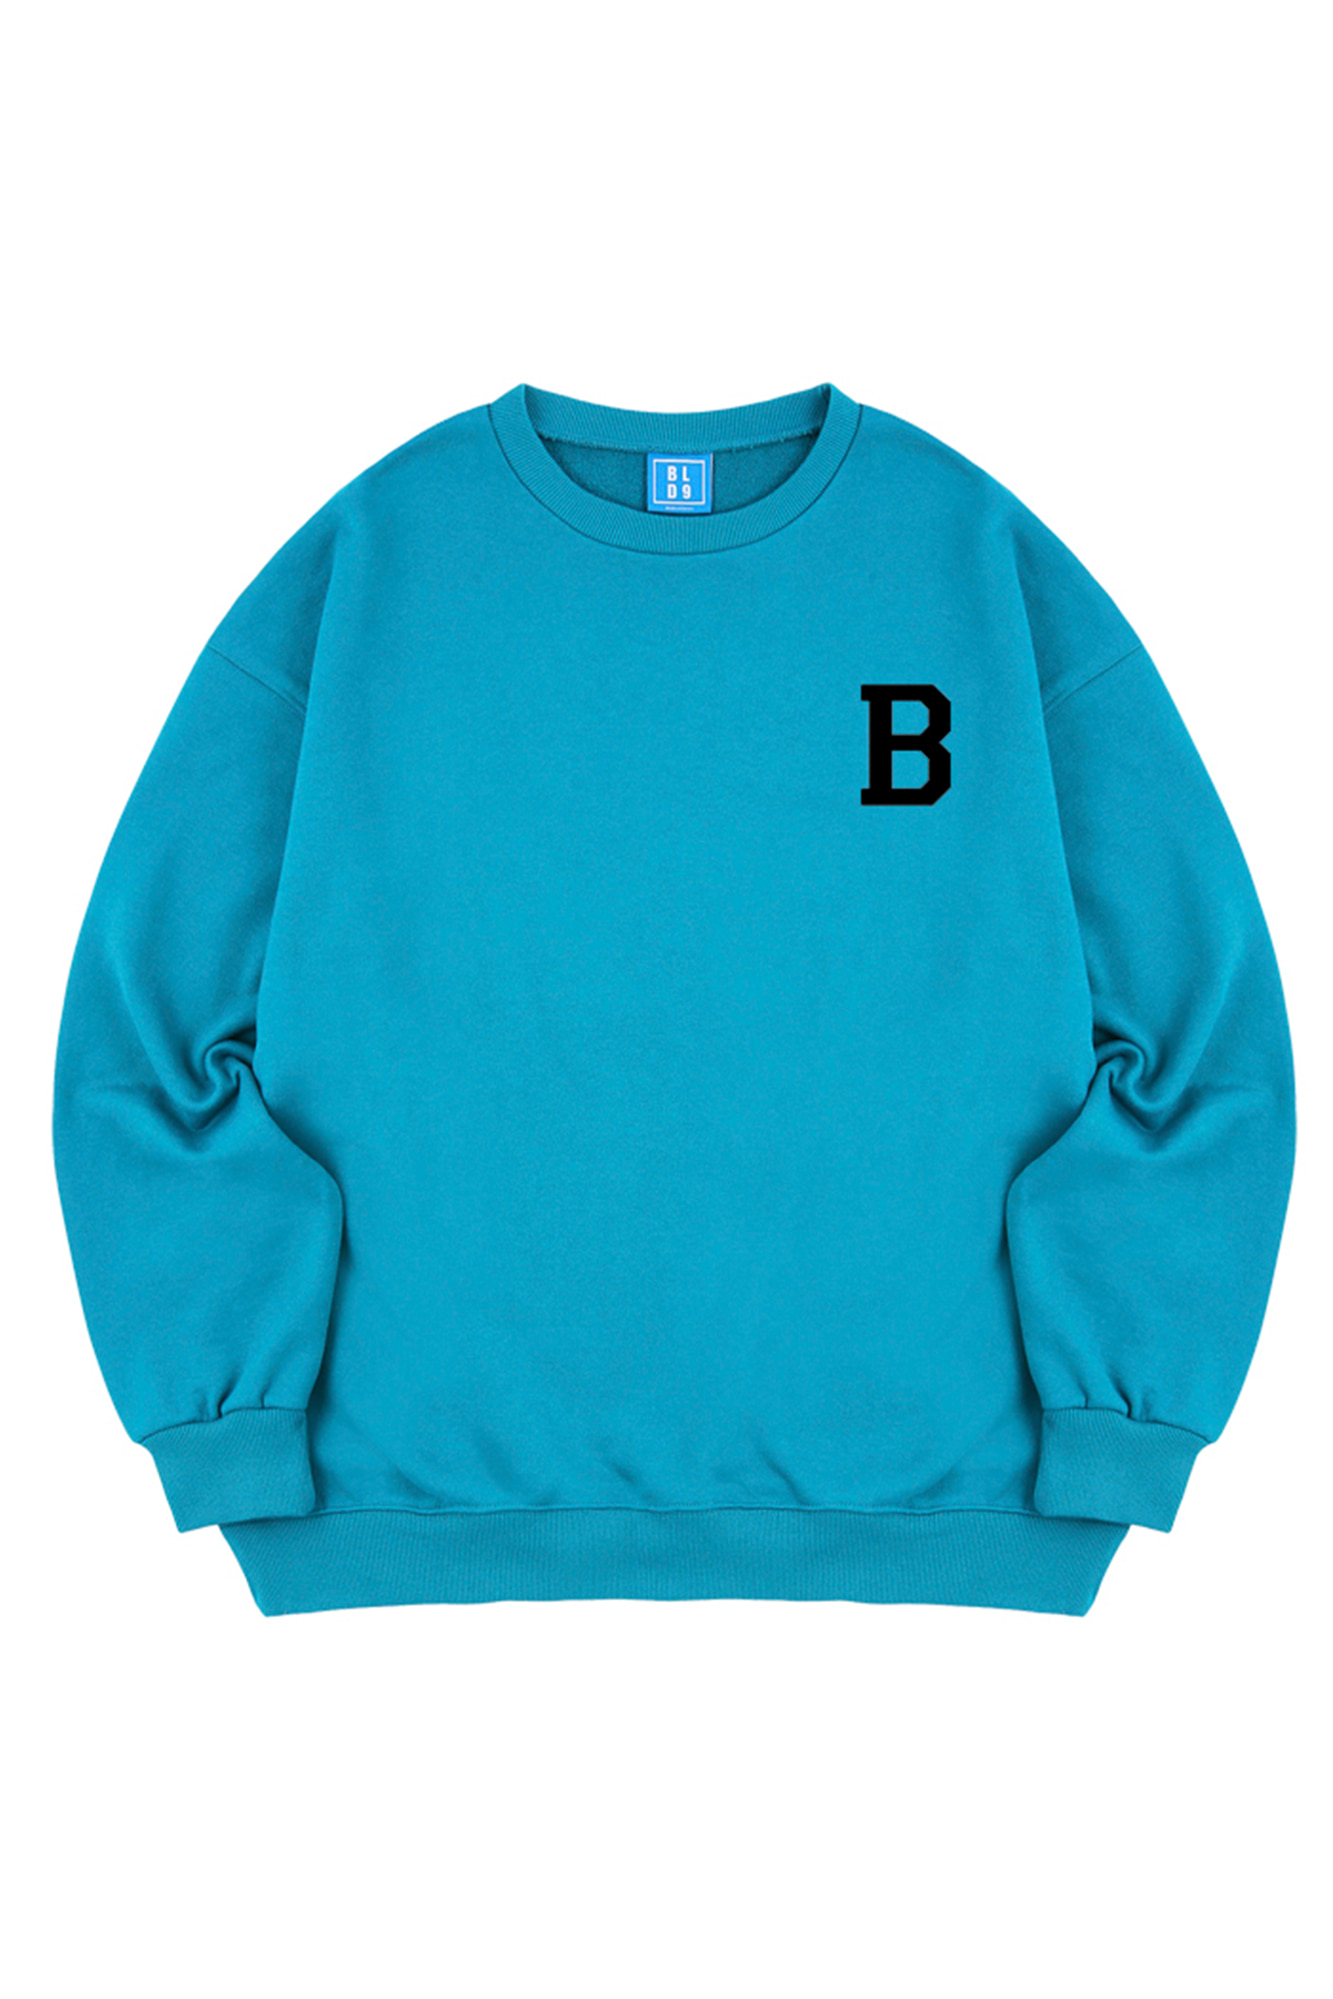 B BLACK LOGO SWEATSHIRT